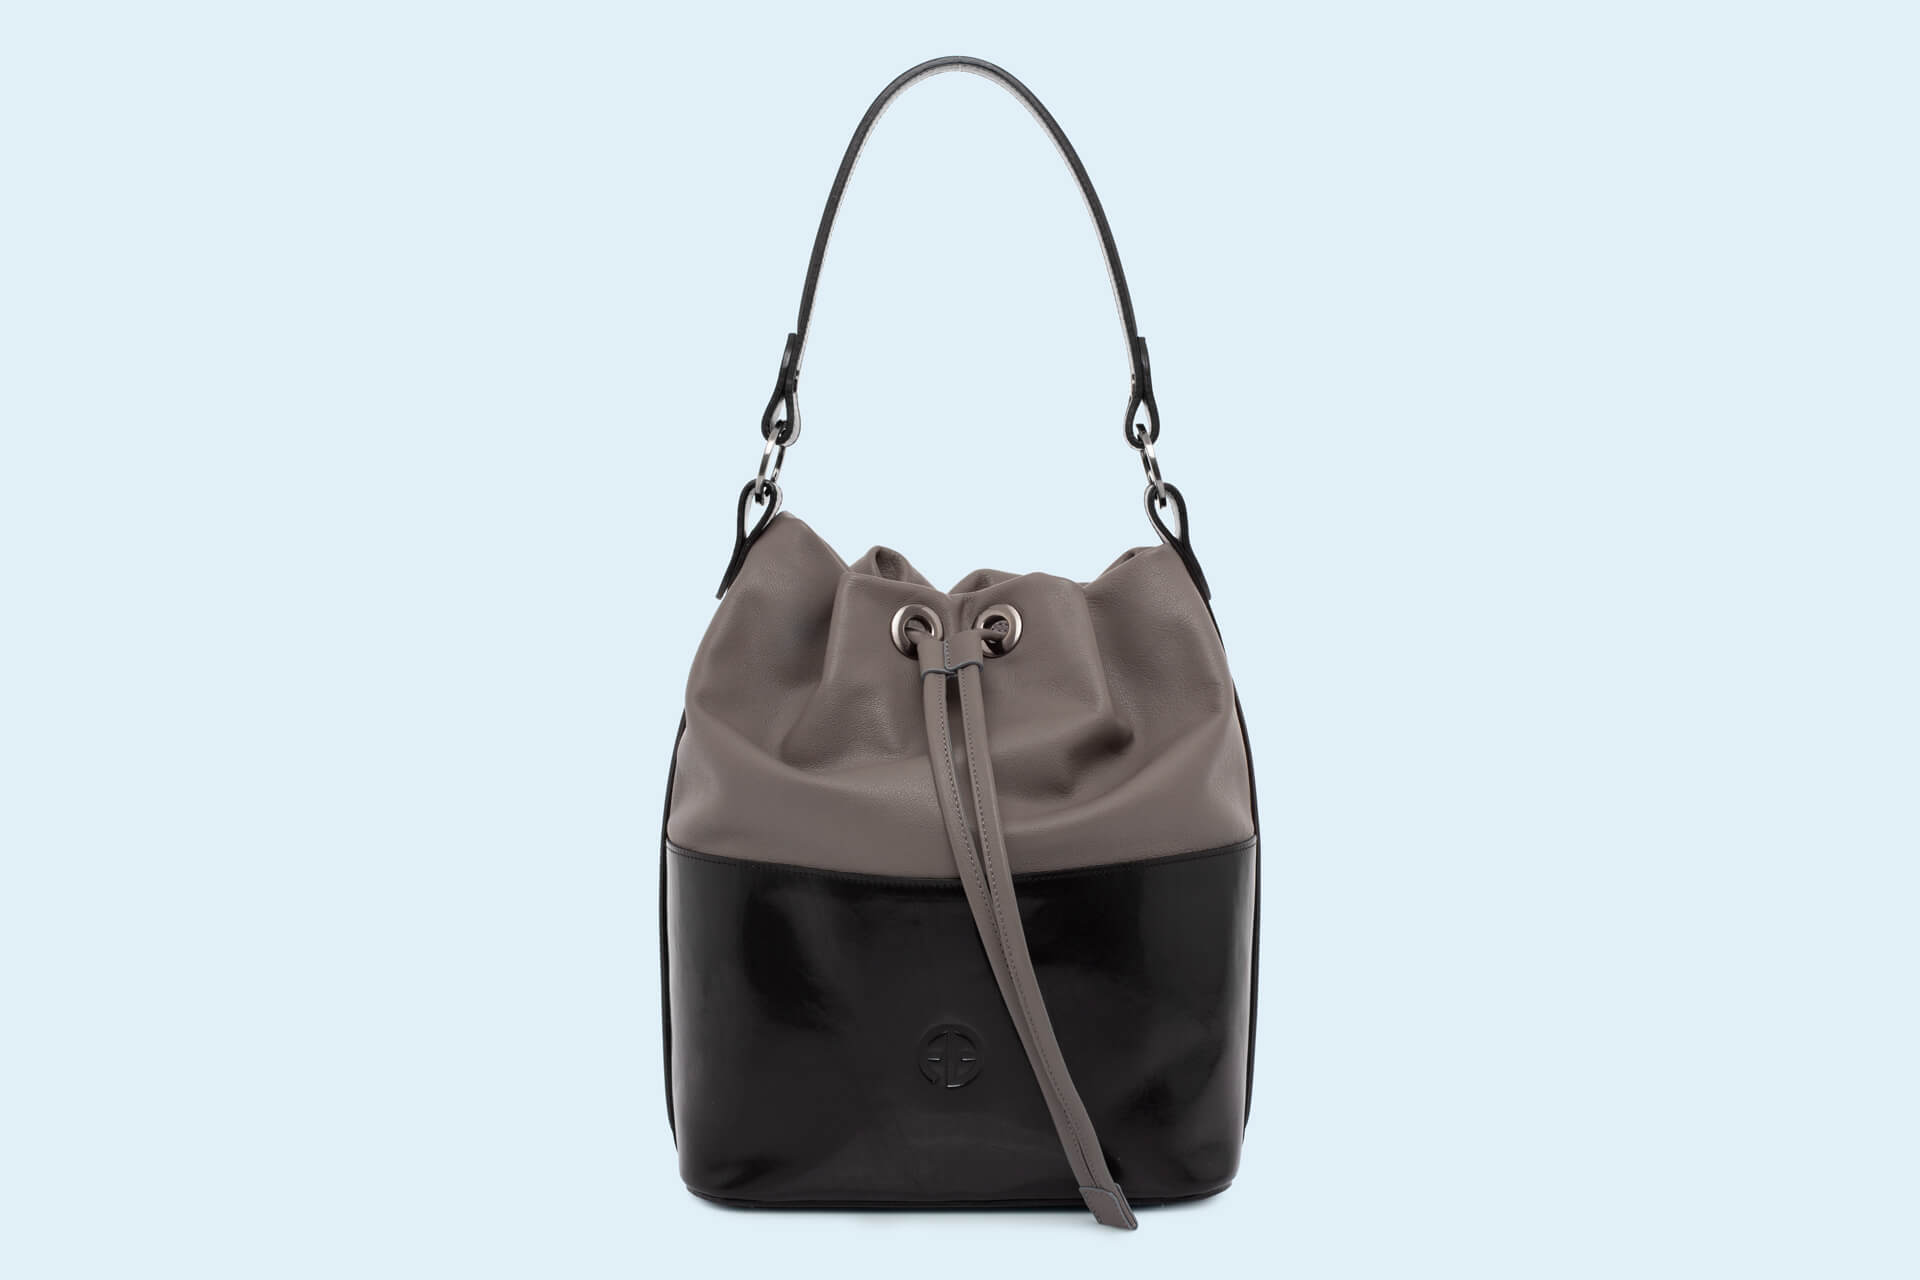 b0b9f5abdd318 Torebka damska worek - Verity Bucket bag black/grey | ADAM BARON